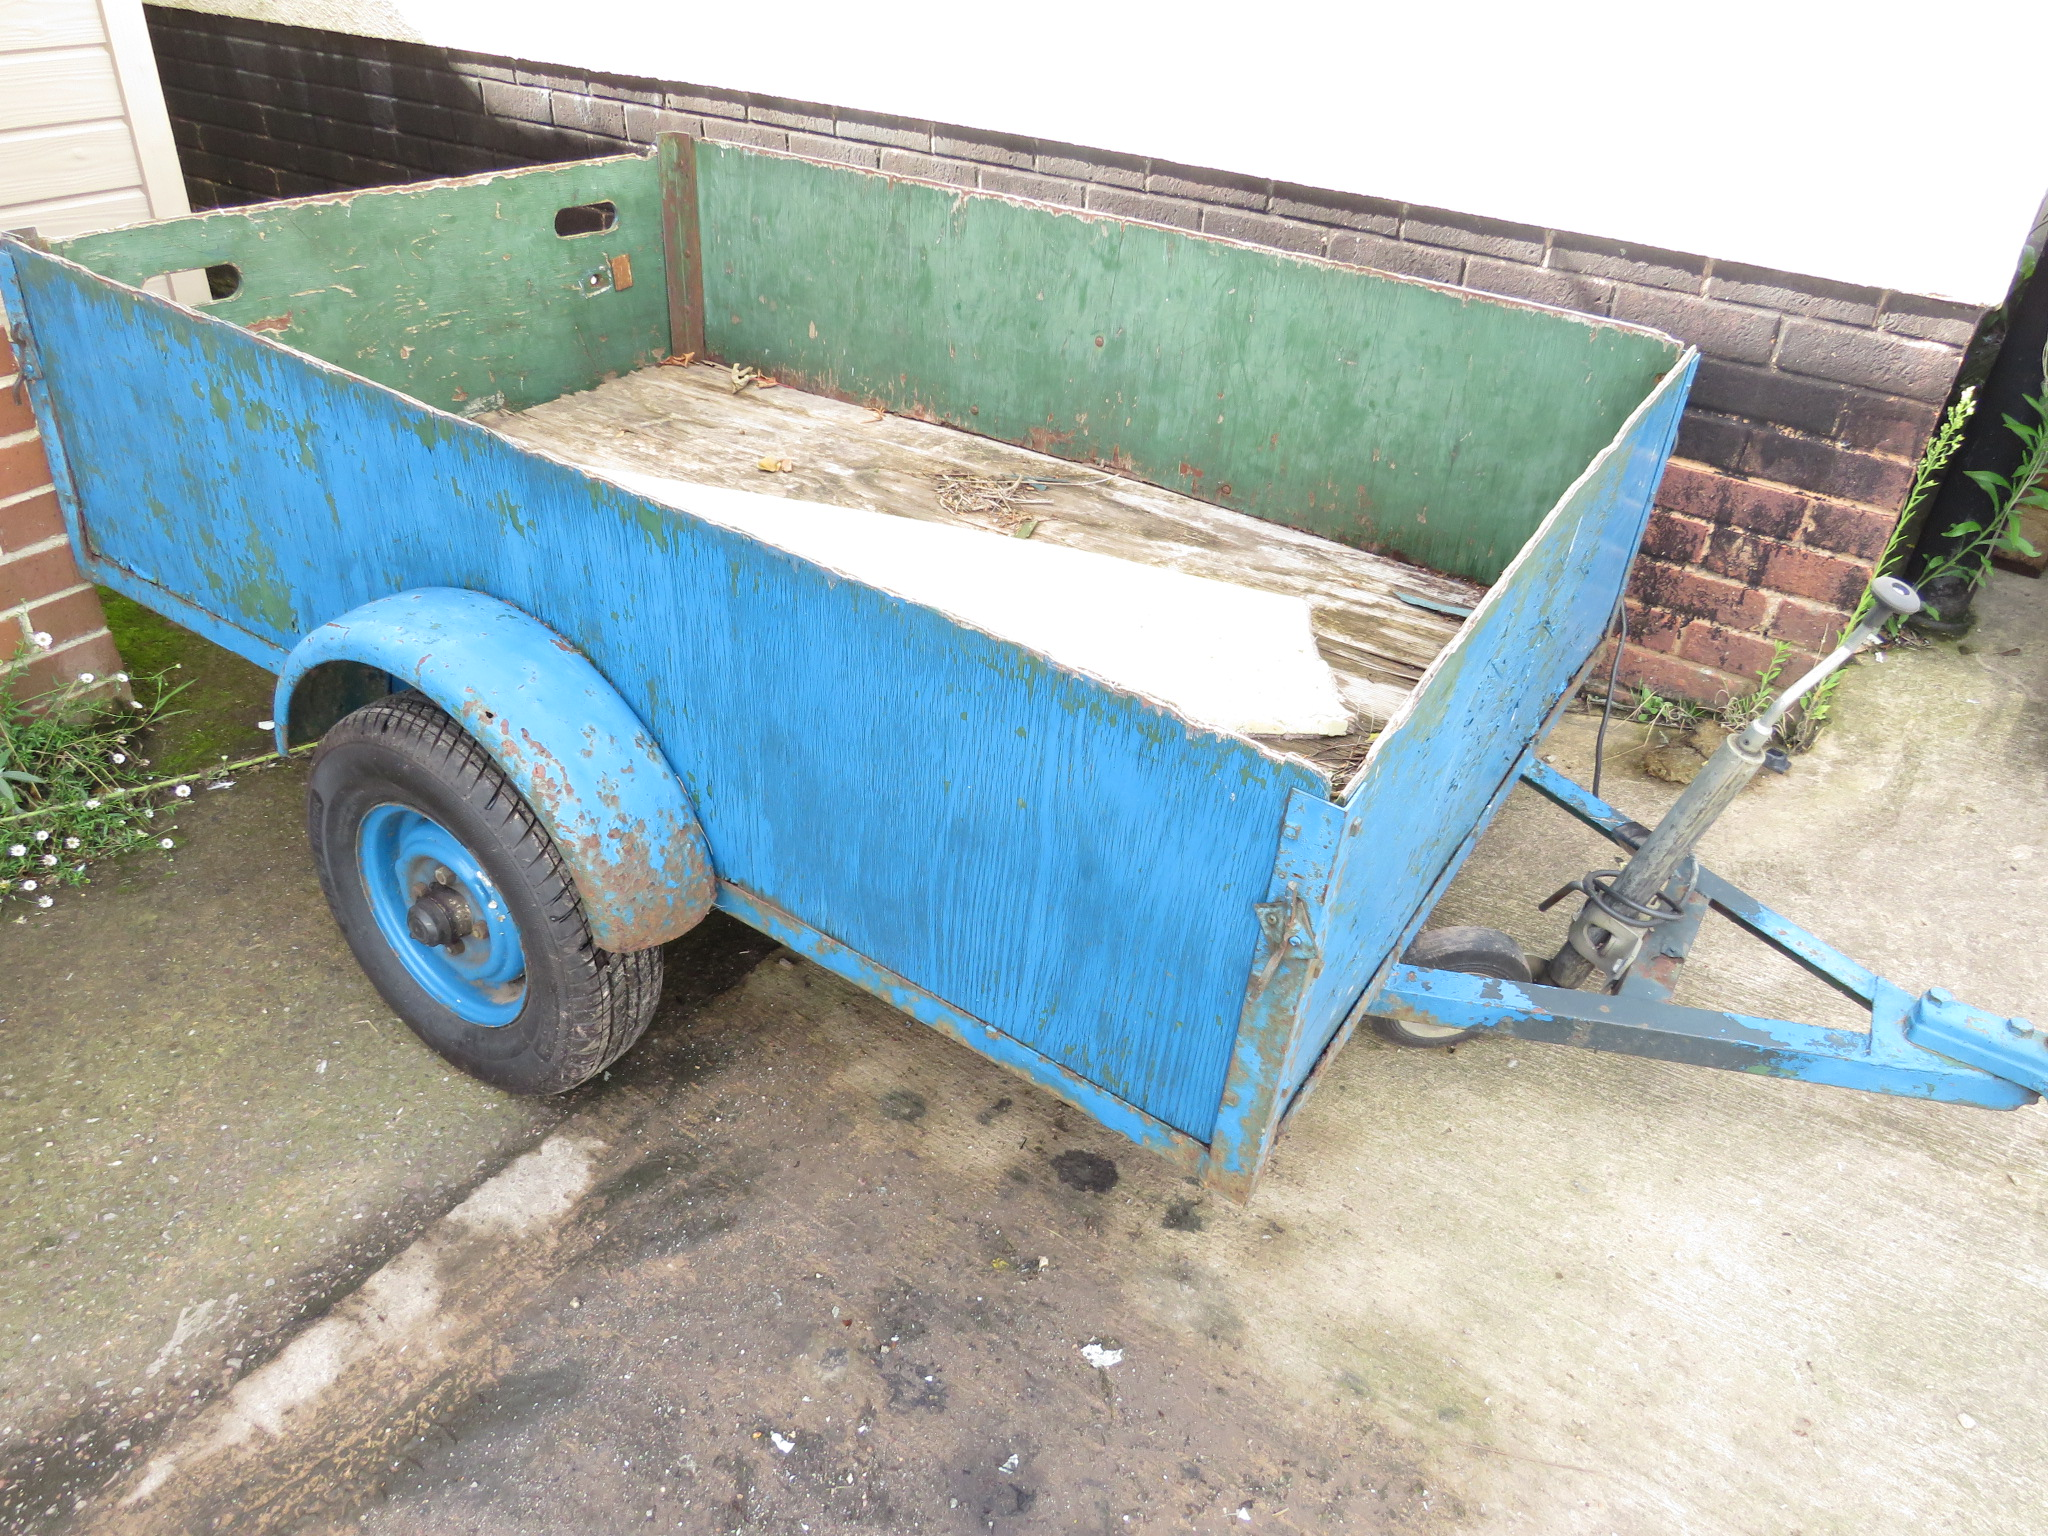 Lot 2A - LARGE TRAILER WITH BLUE PAINTED WOODEN PANELS (A/F)